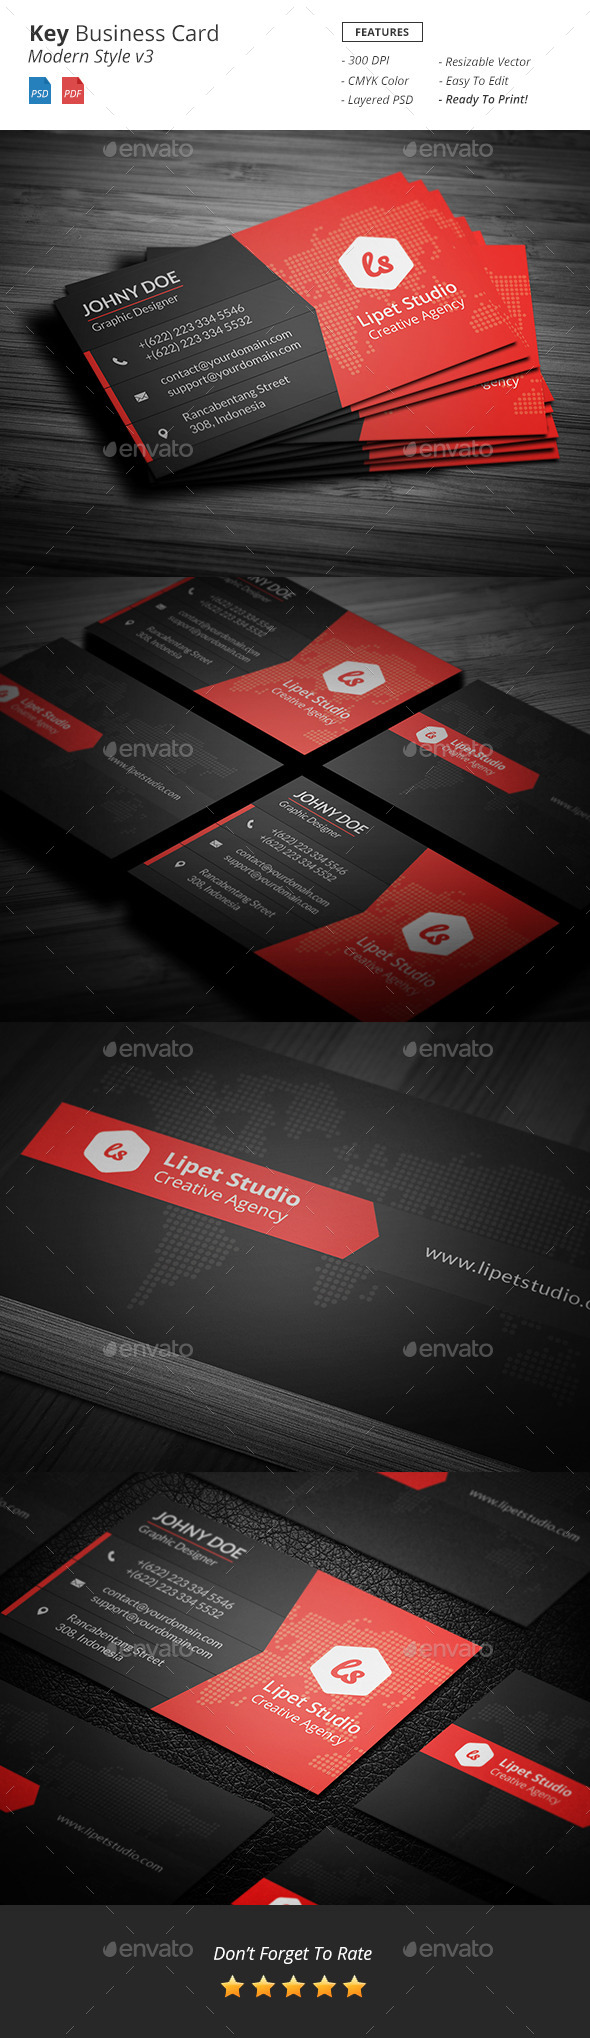 GraphicRiver Key Modern Business Card Template v3 10126344